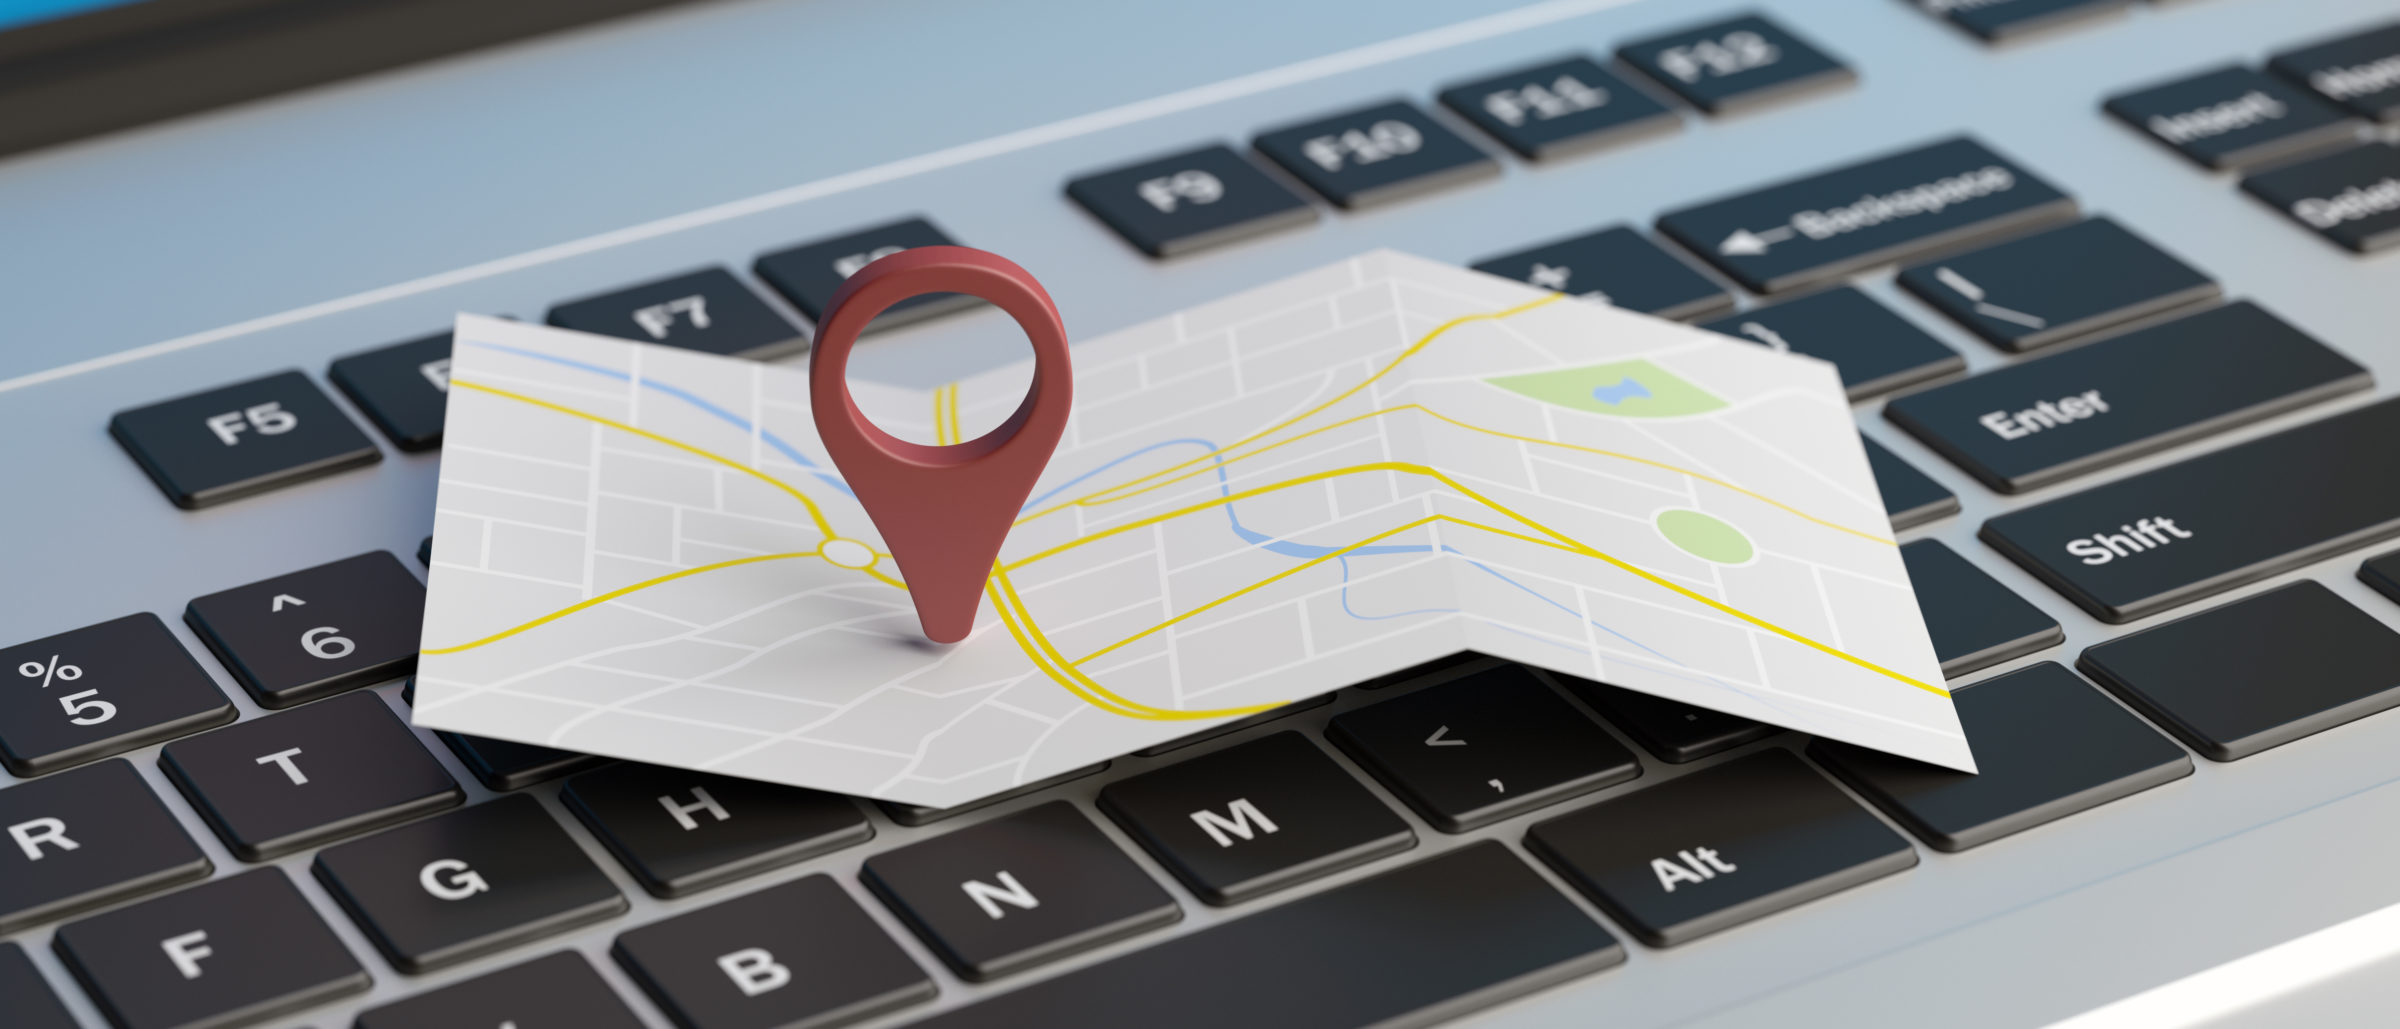 map pointer location on a laptop 3d illustration 72HGYF3